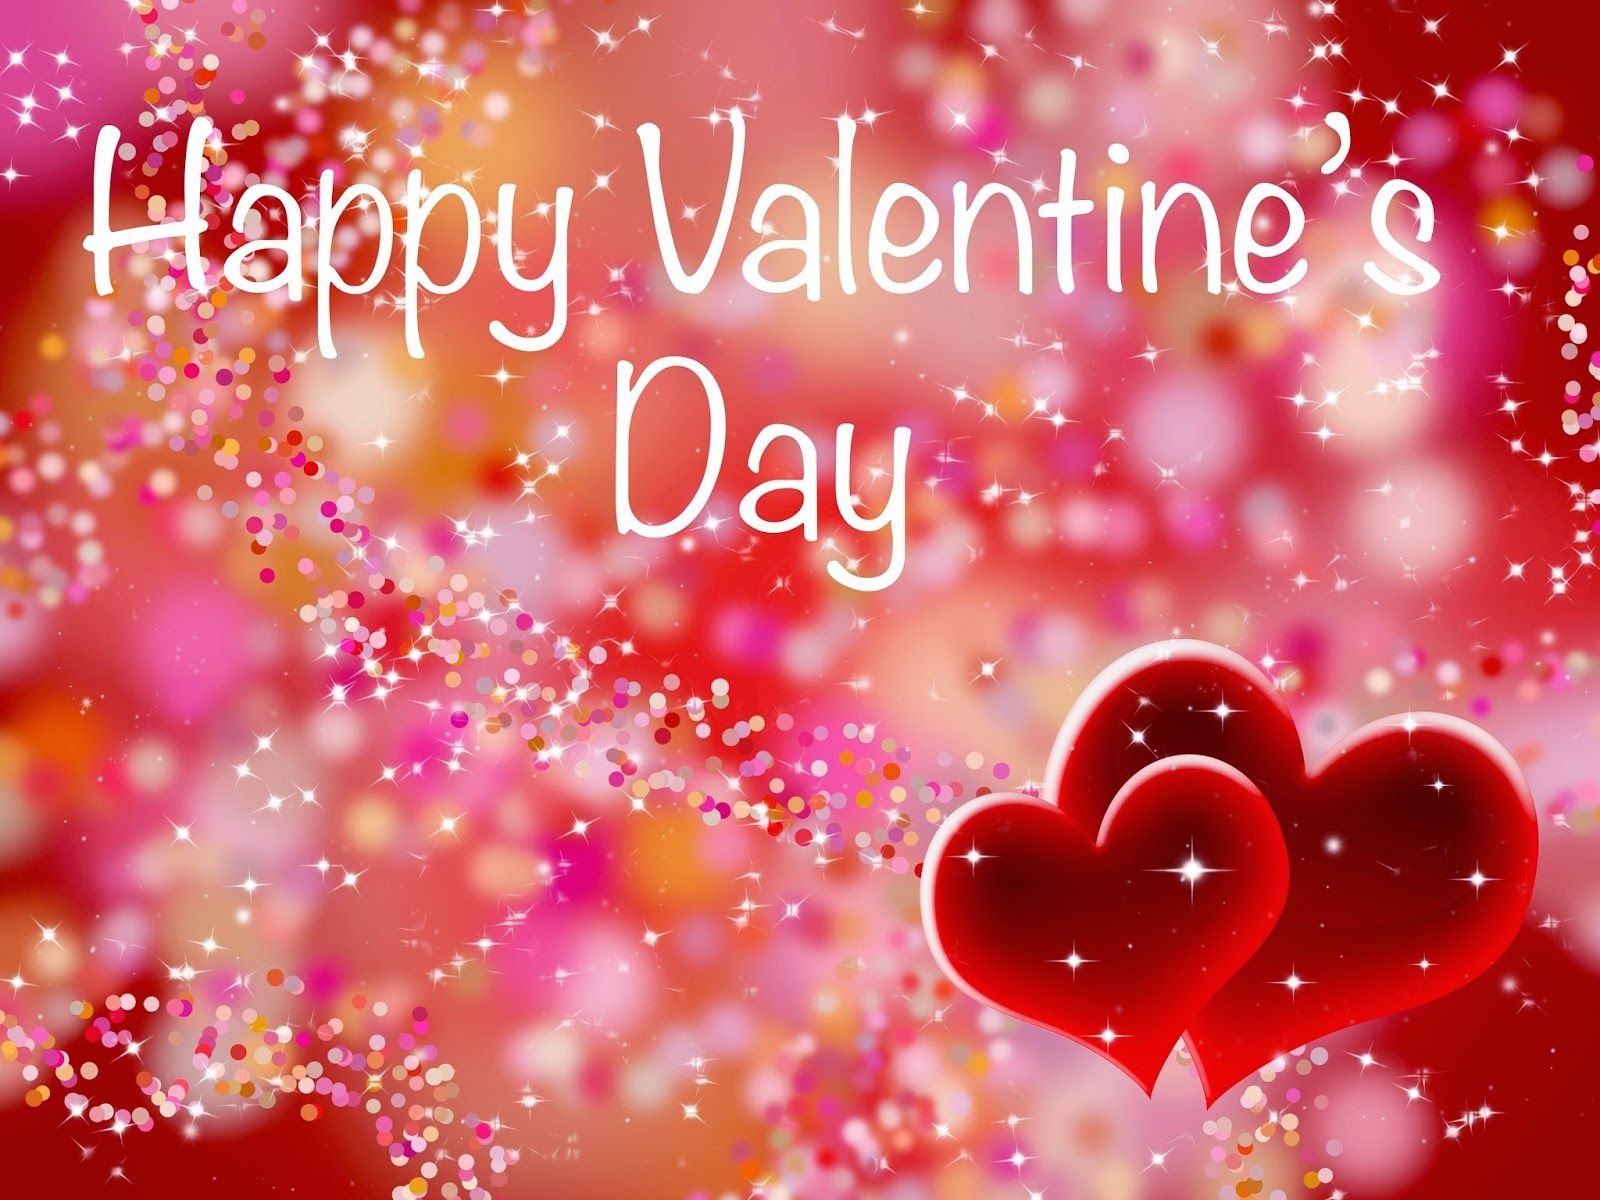 A Love Romantic Collection Happy Valentines Day 2017 Images Sms